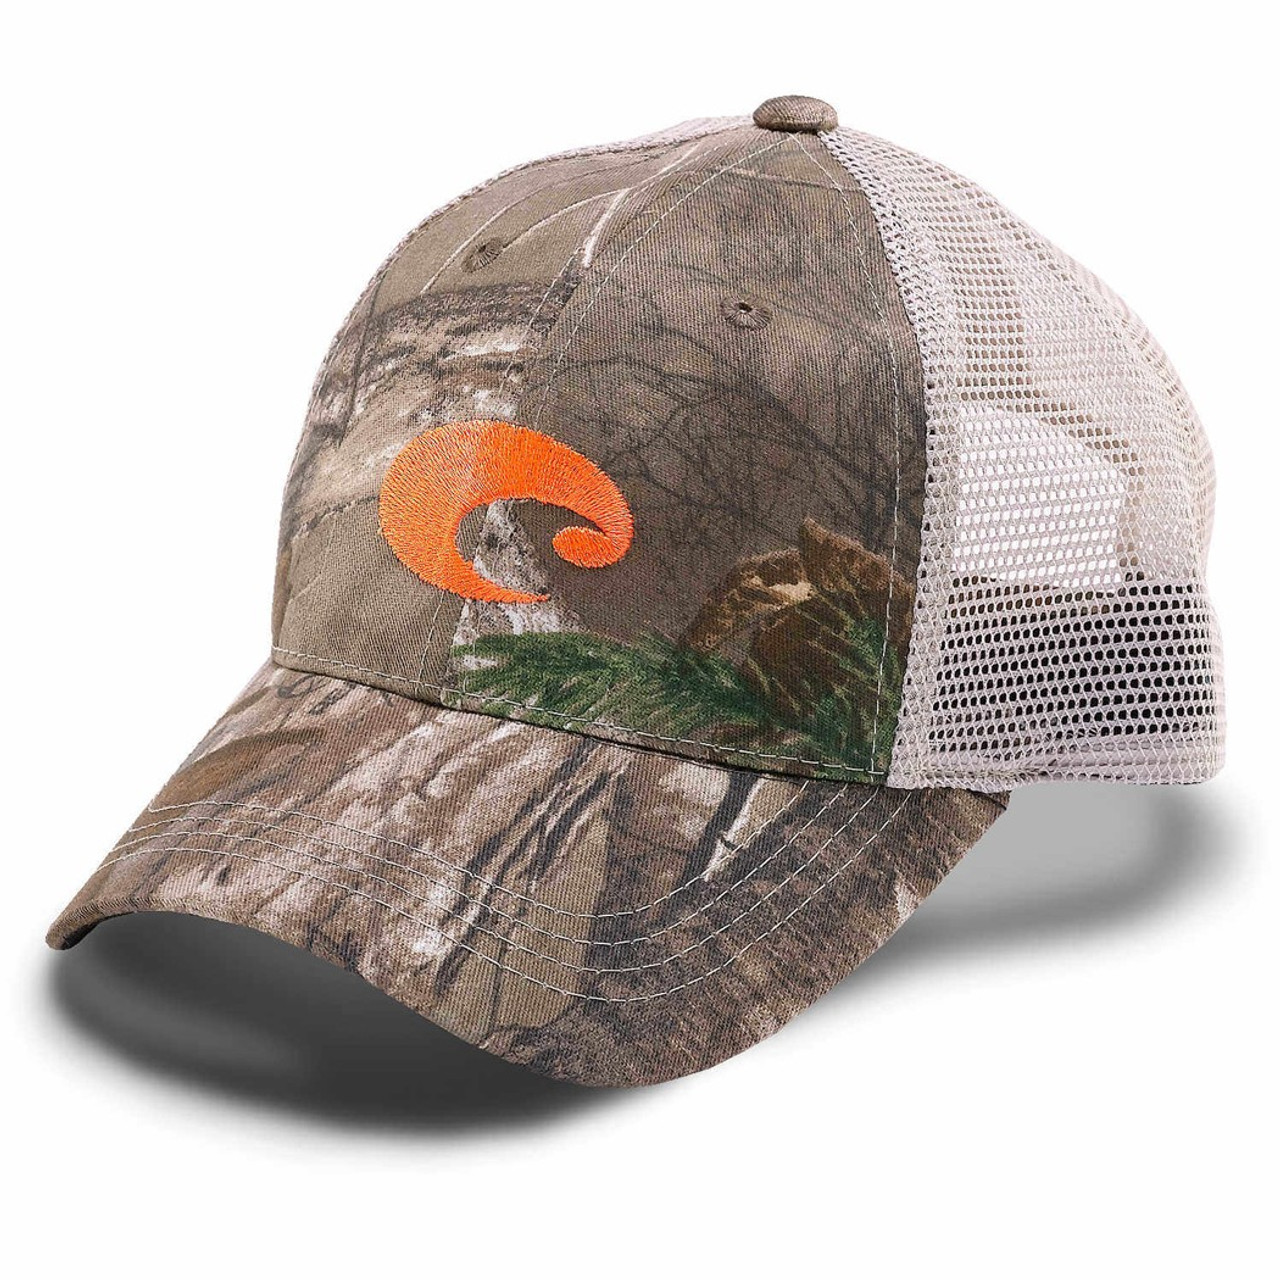 Costa Hat - Costa Mesh Hat - Realtree Orange Logo - Surf and Dirt a6eead627d61